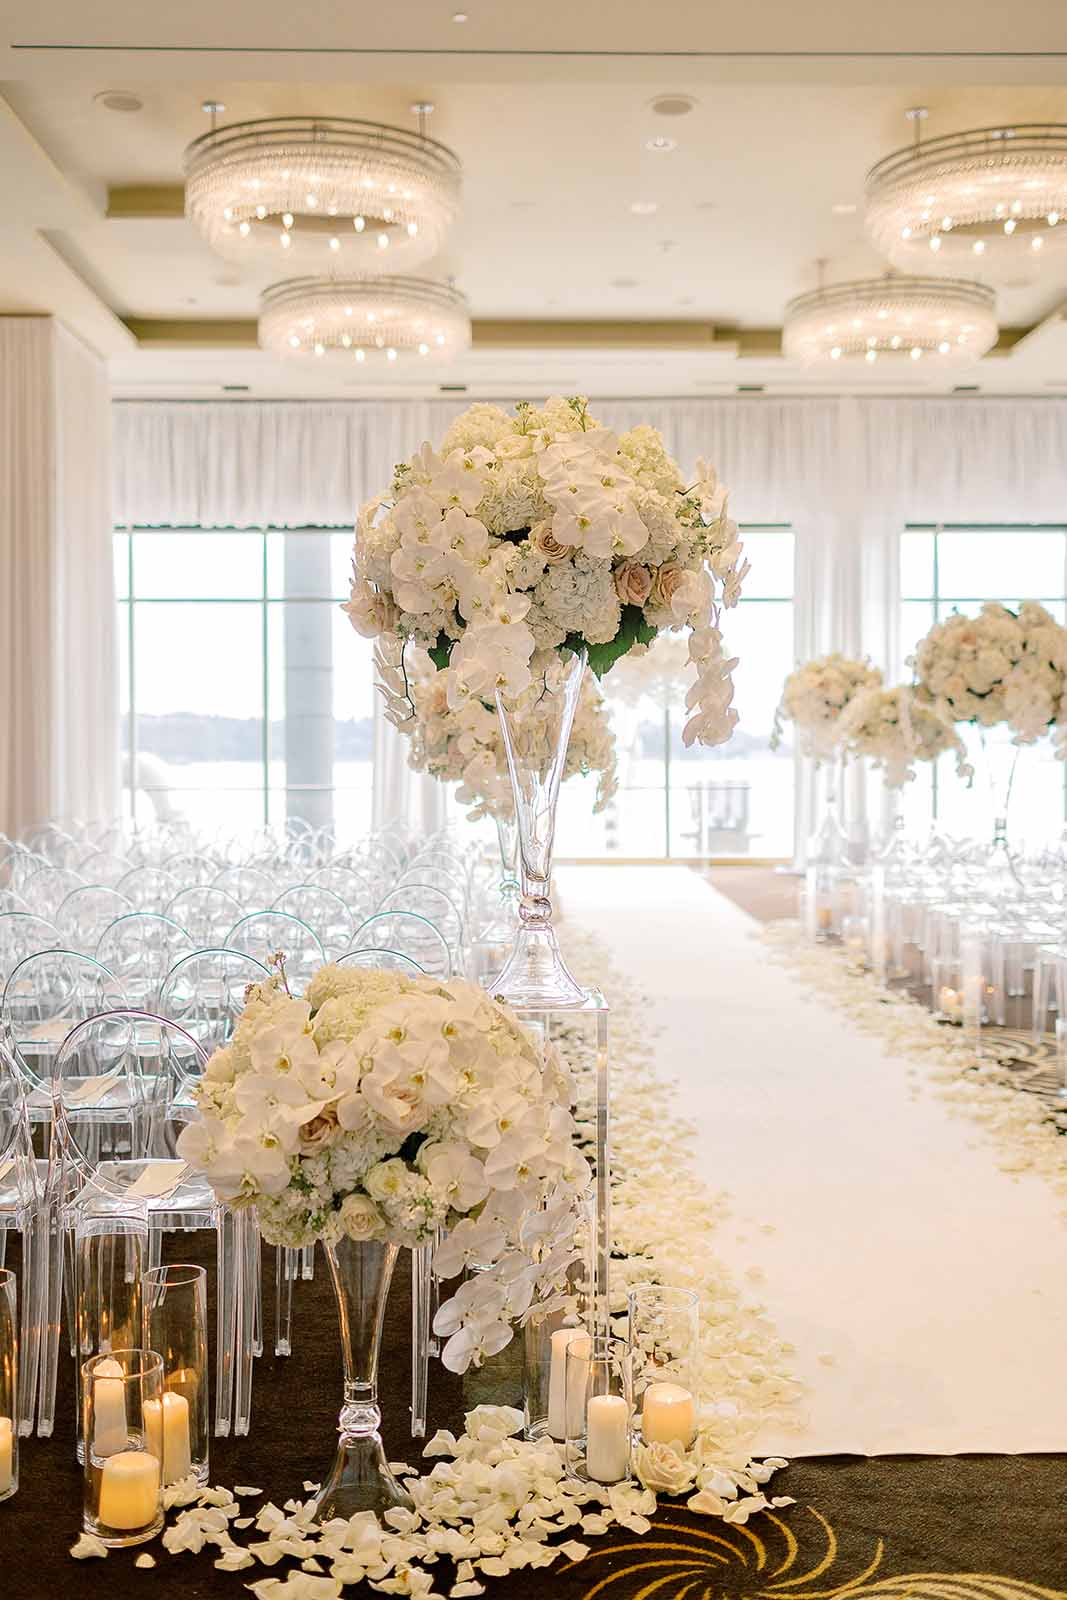 Ceremony aisle lined with white rose petals and candles, aisle entrance with elevated white tall floral for a formal Four Seasons Seattle wedding ceremony | Flora Nova Design